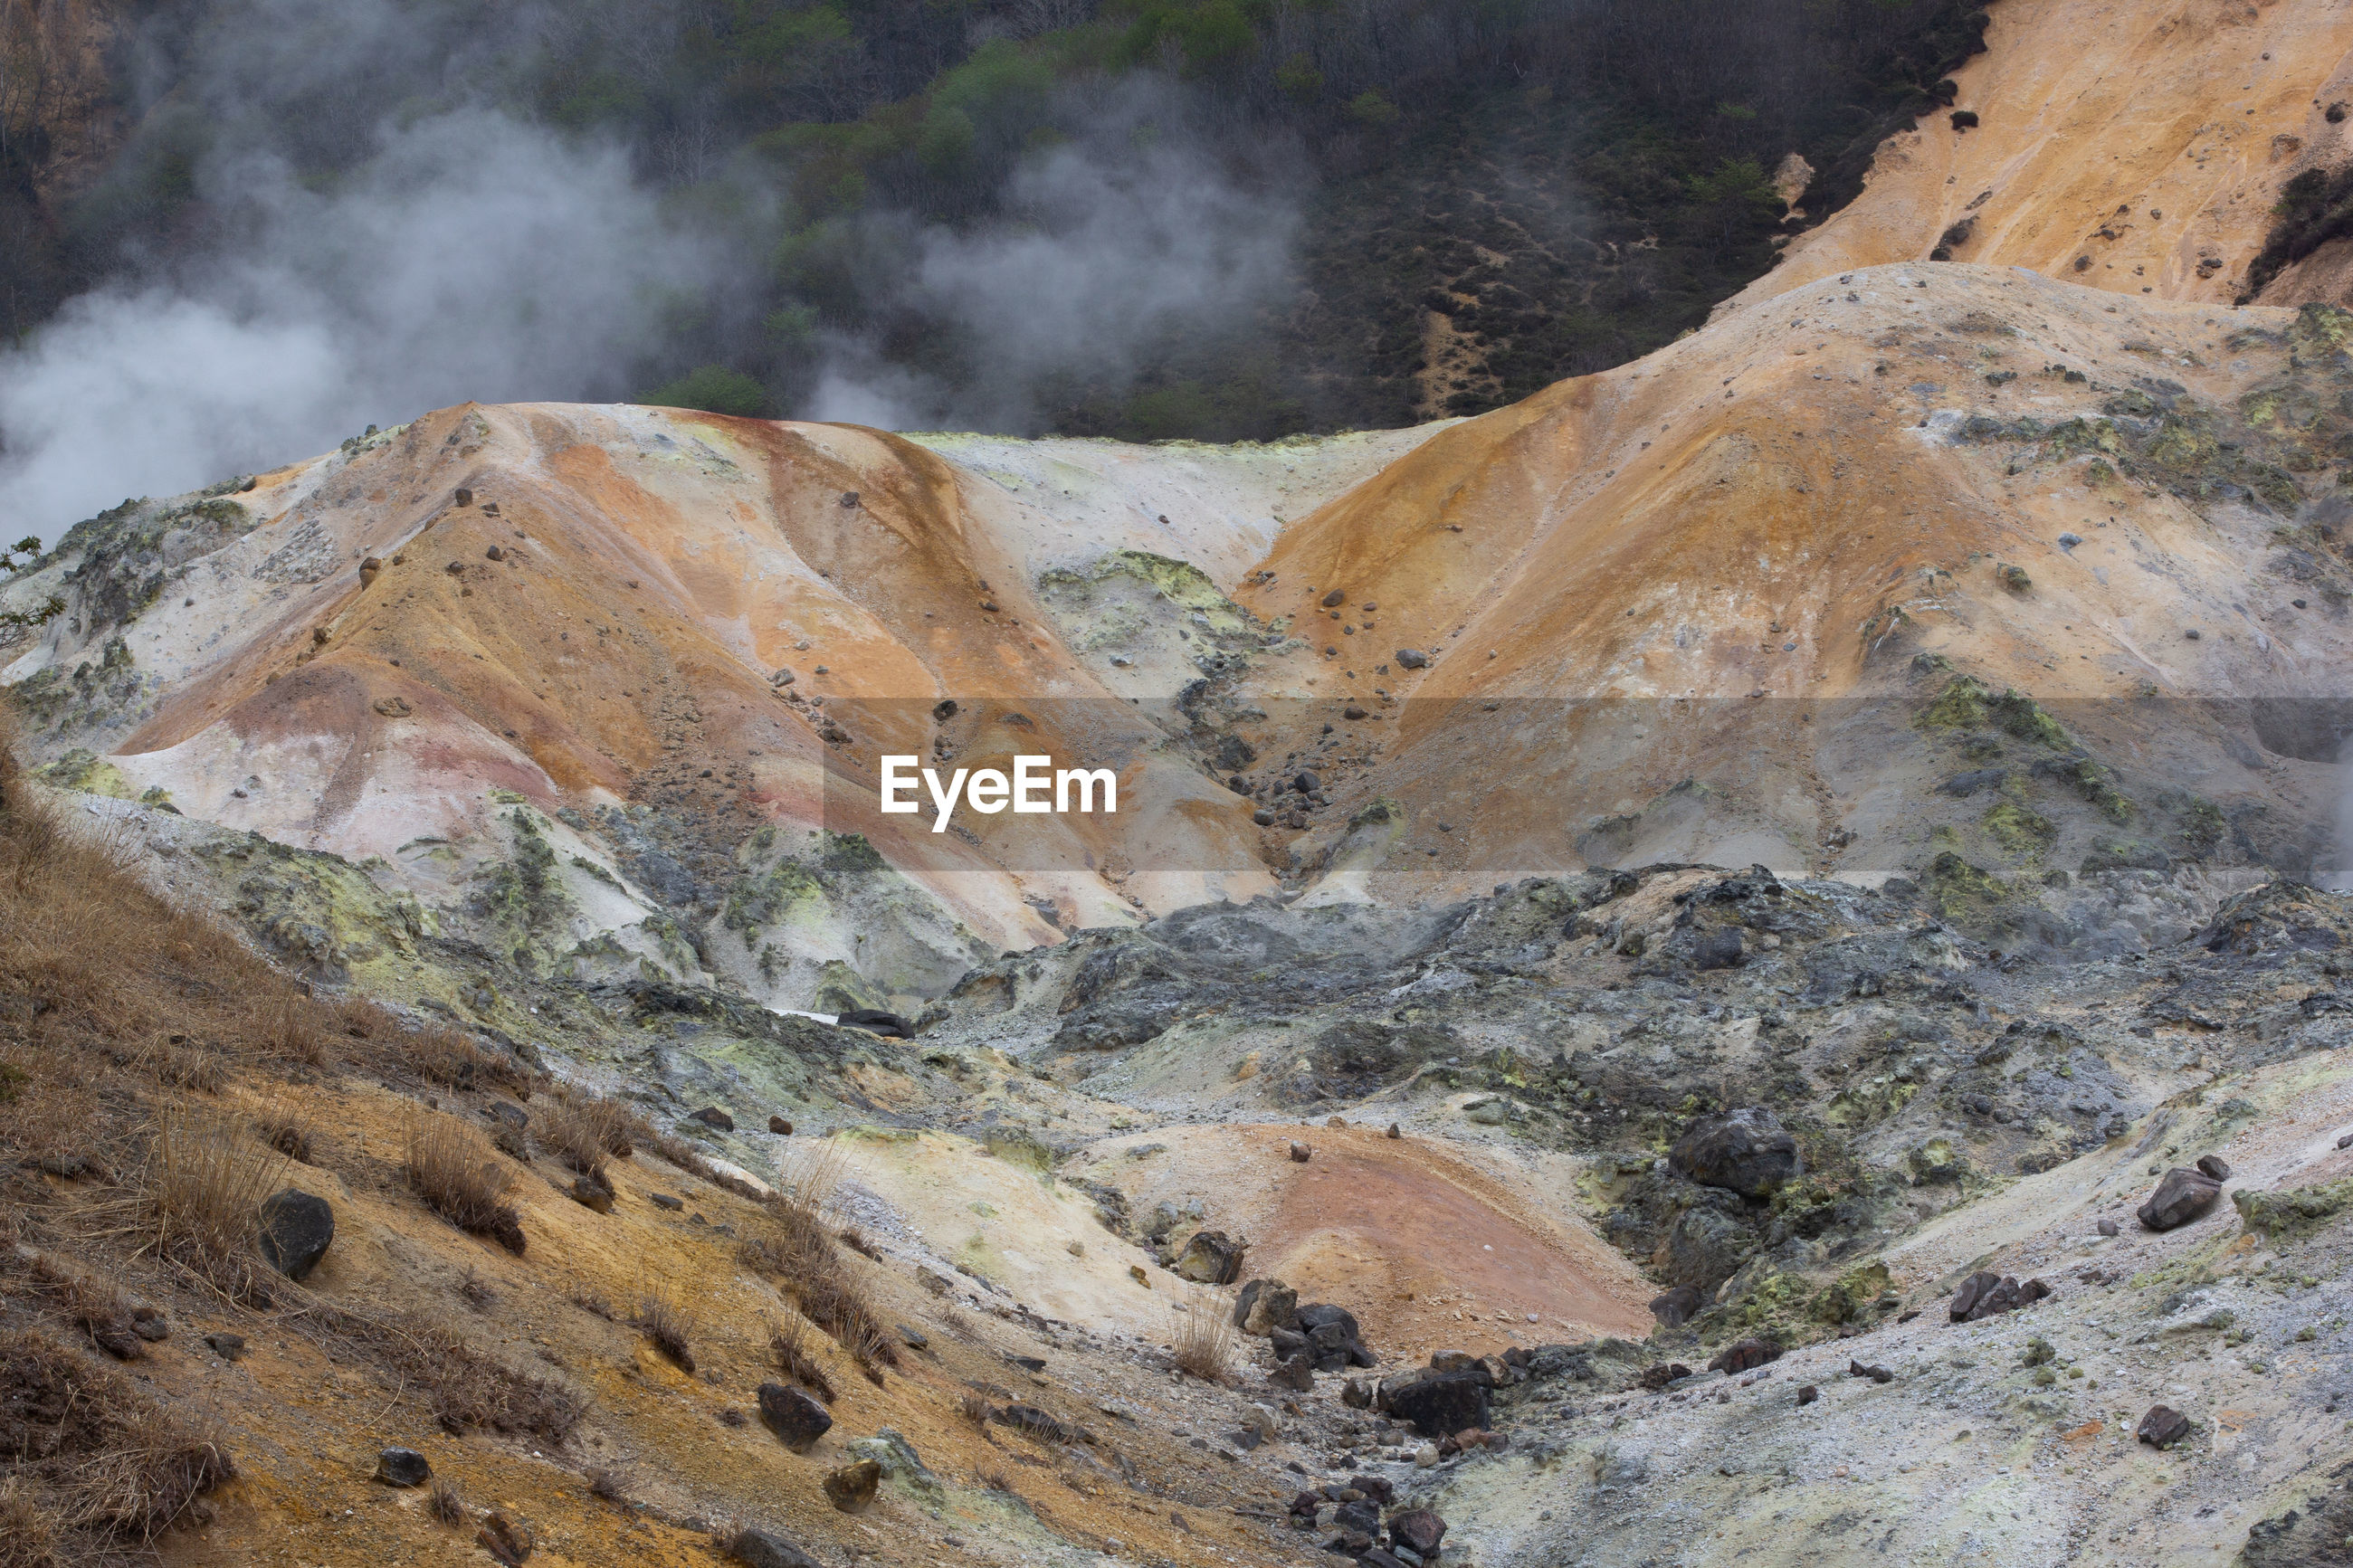 VIEW OF VOLCANIC LANDSCAPE